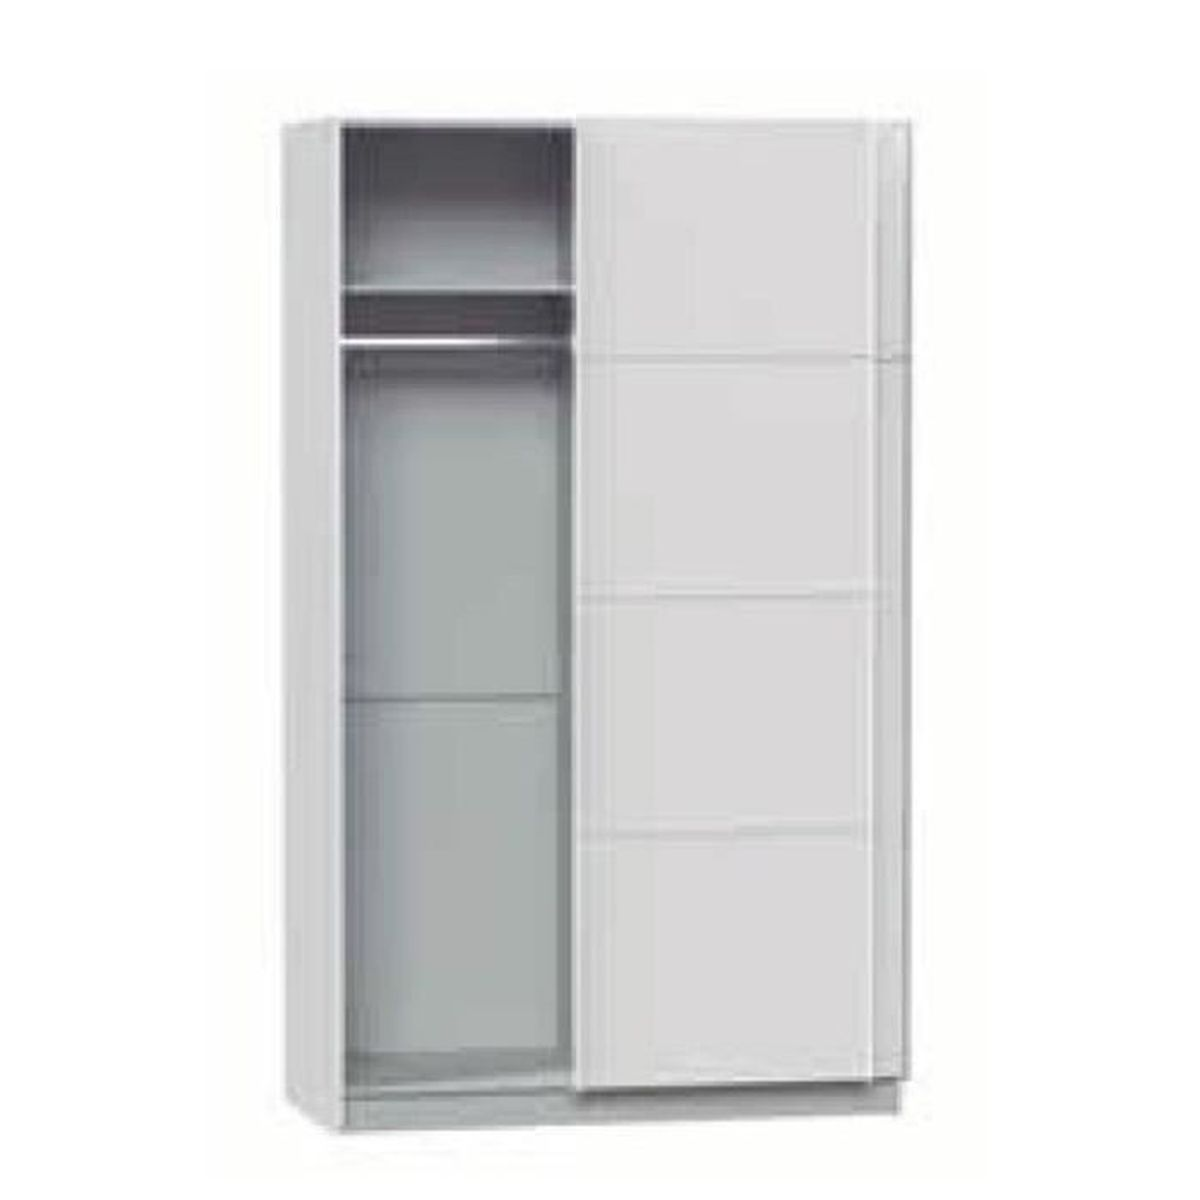 armoire avec 2 portes coulissantes coloris blanc dim 180 x 60 x 220 cm achat vente. Black Bedroom Furniture Sets. Home Design Ideas